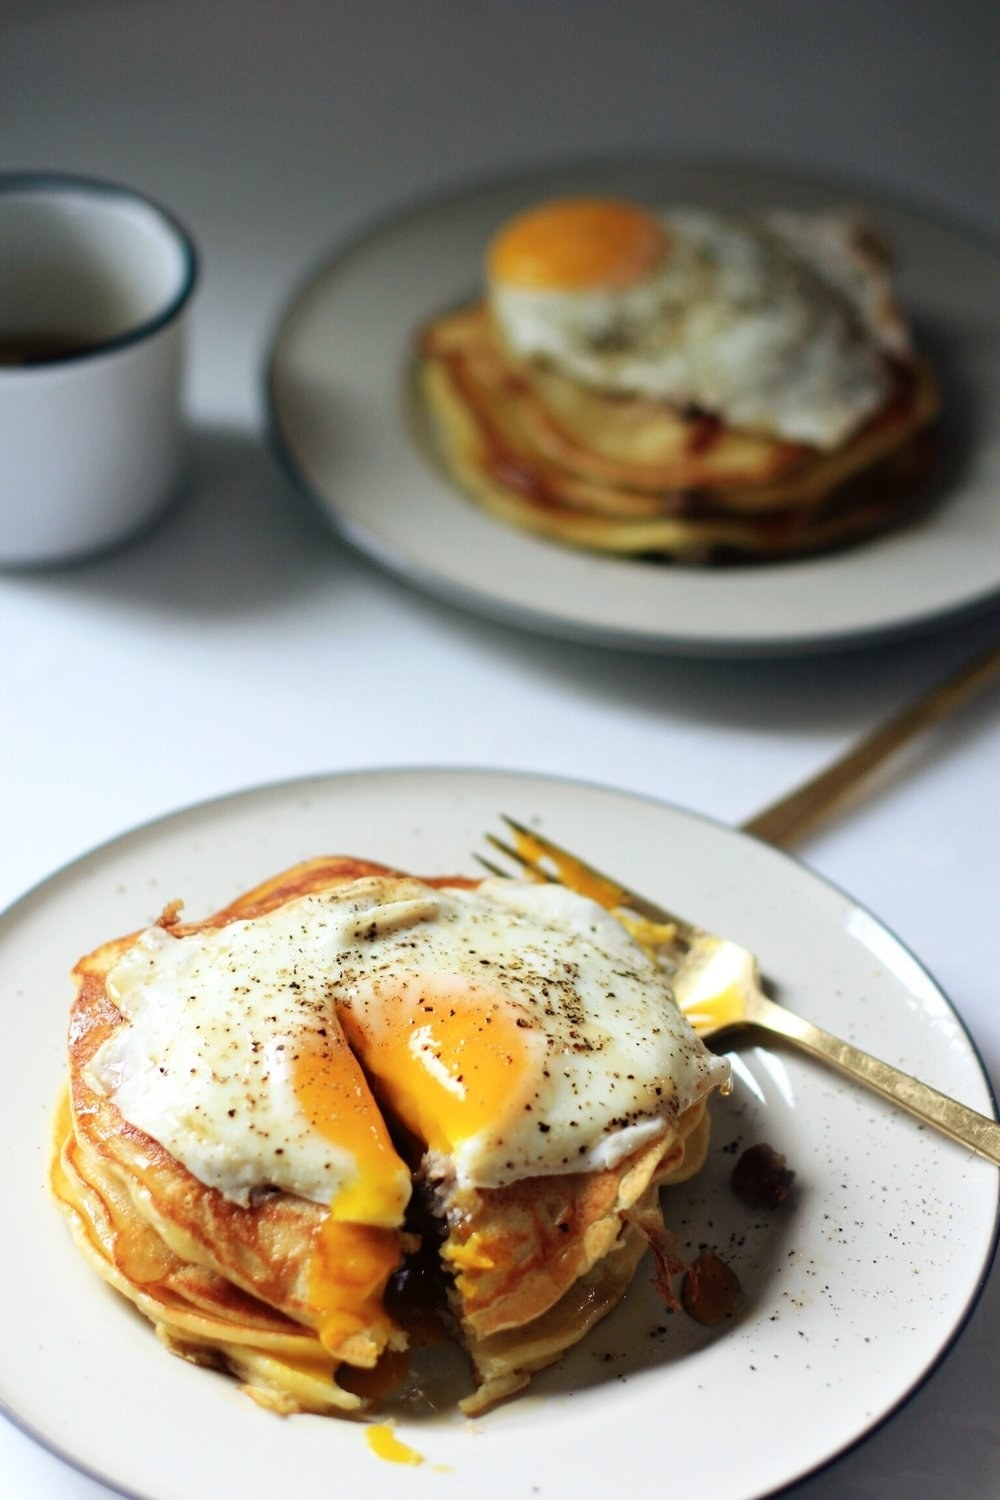 A stack of pancakes with fried egg on top.